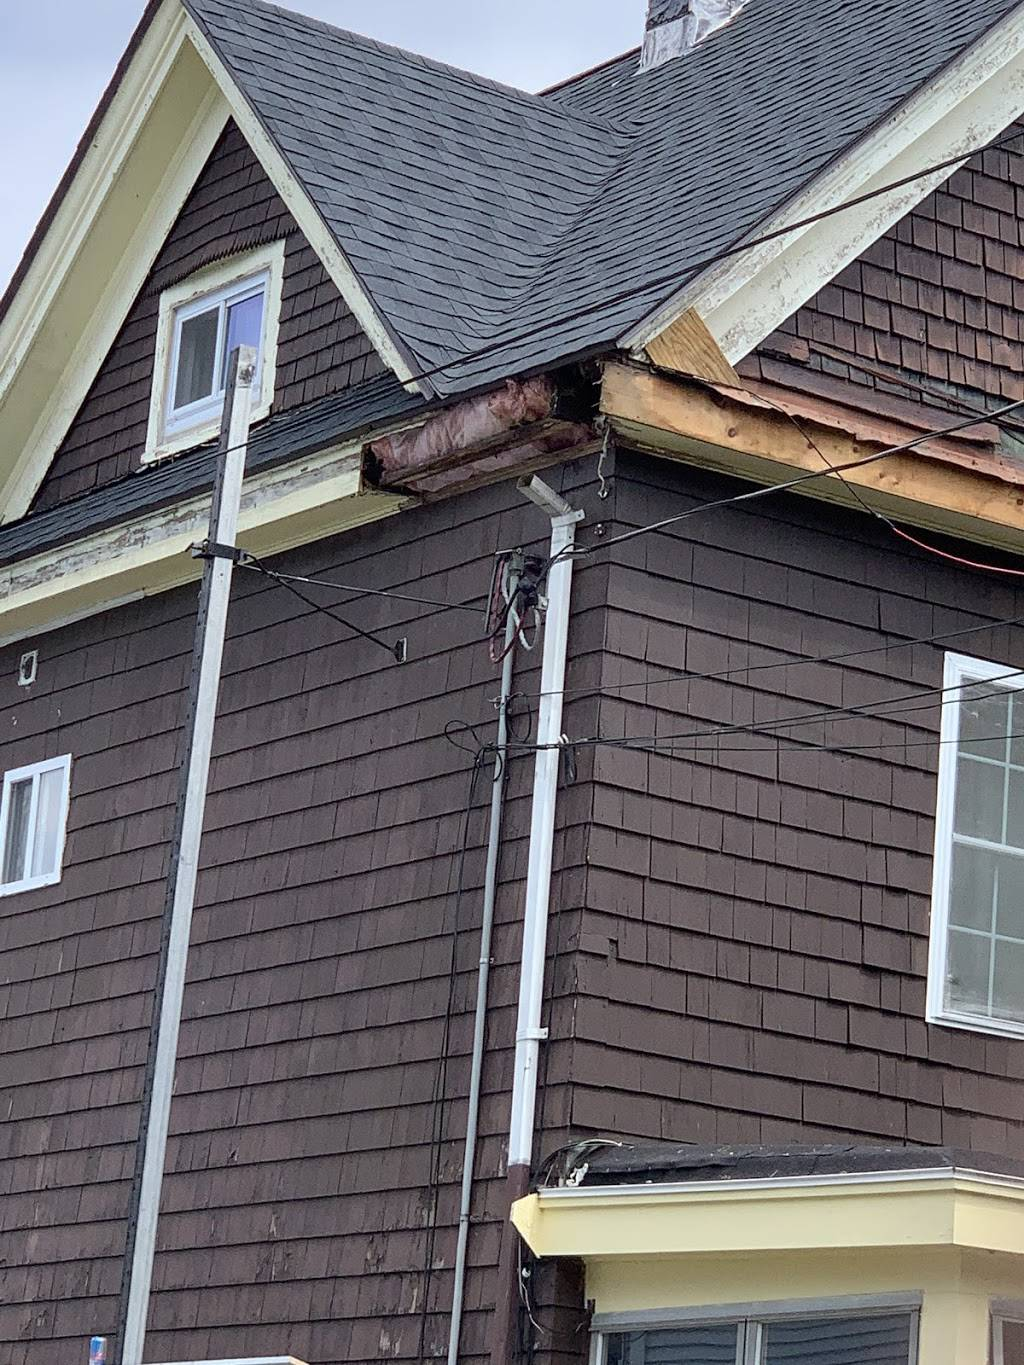 Recon Roofing & Gutters, LLC. - roofing contractor  | Photo 7 of 10 | Address: 41 Zoar Ave, Dedham, MA 02026, USA | Phone: (617) 924-1133